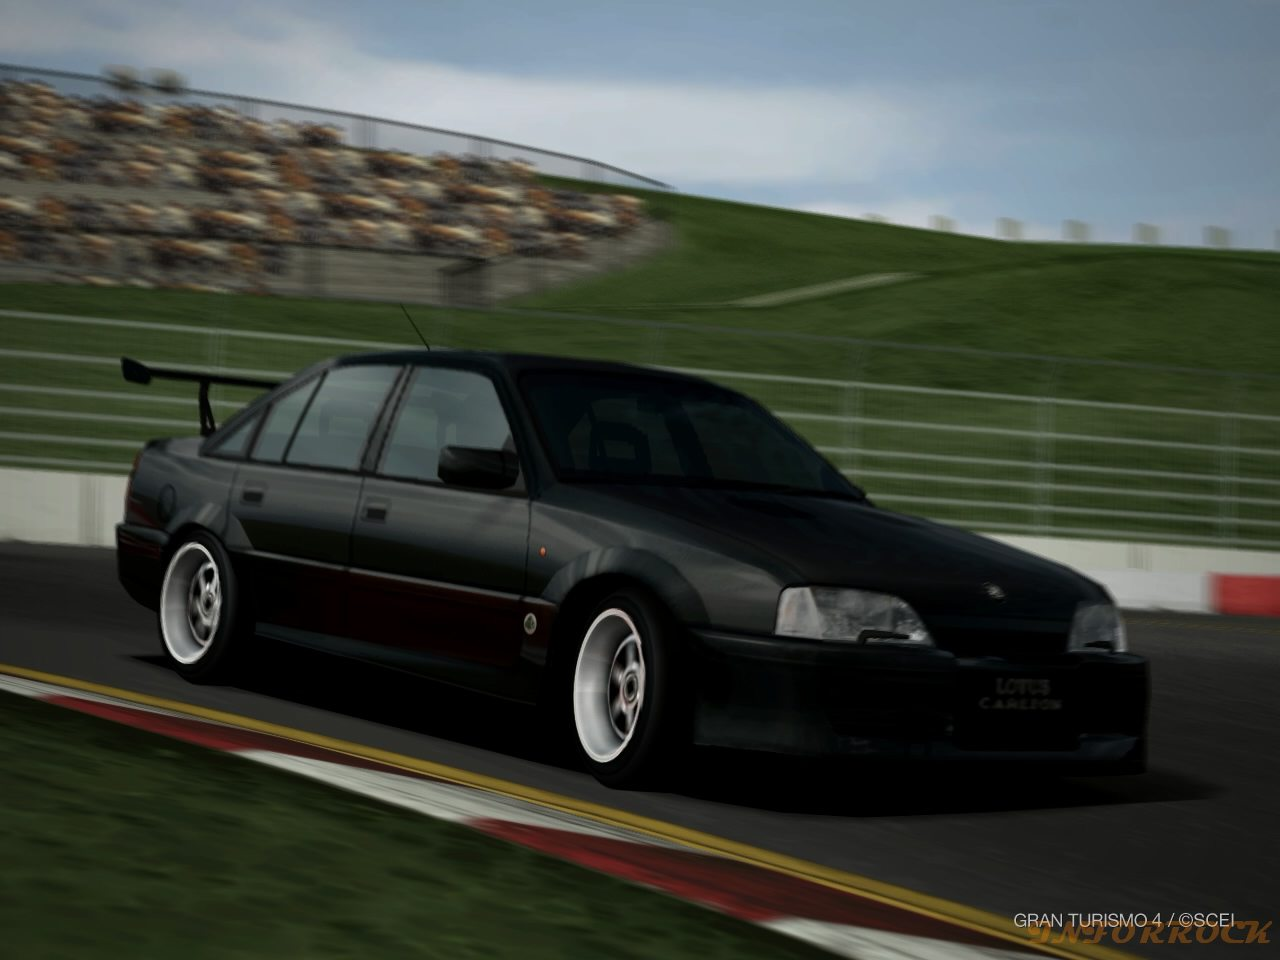 lotus carlton gran turismo 4 lotus carlton in gran turismo 4 gt6 lotus carlton 39 90 exhaust. Black Bedroom Furniture Sets. Home Design Ideas